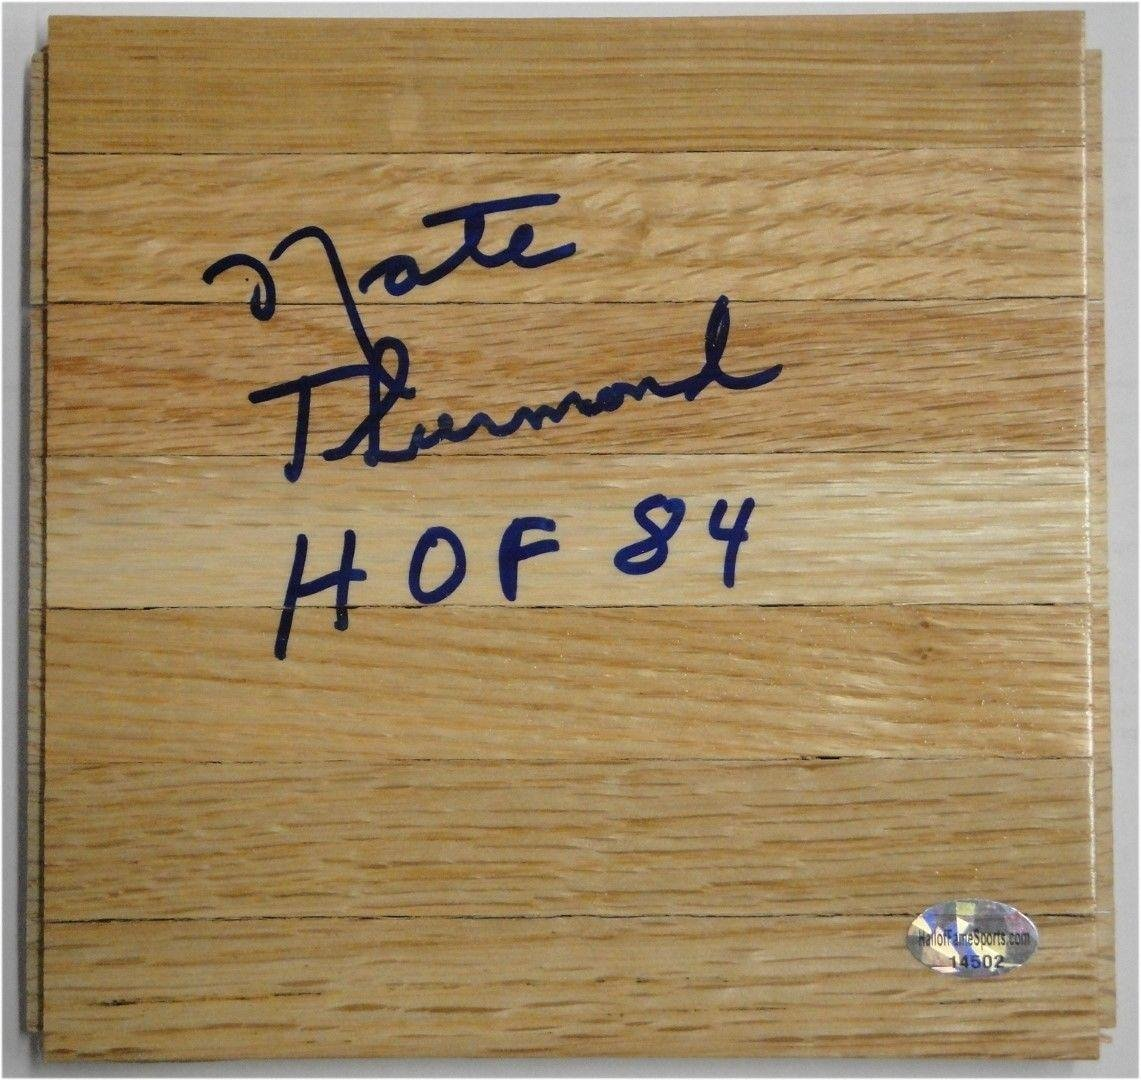 Nate Thurmond Hand Signed Piece of Wood Floorboard Golden State Warriors HOF 84 - Autographed NBA Floor Boards Sports Memorabilia